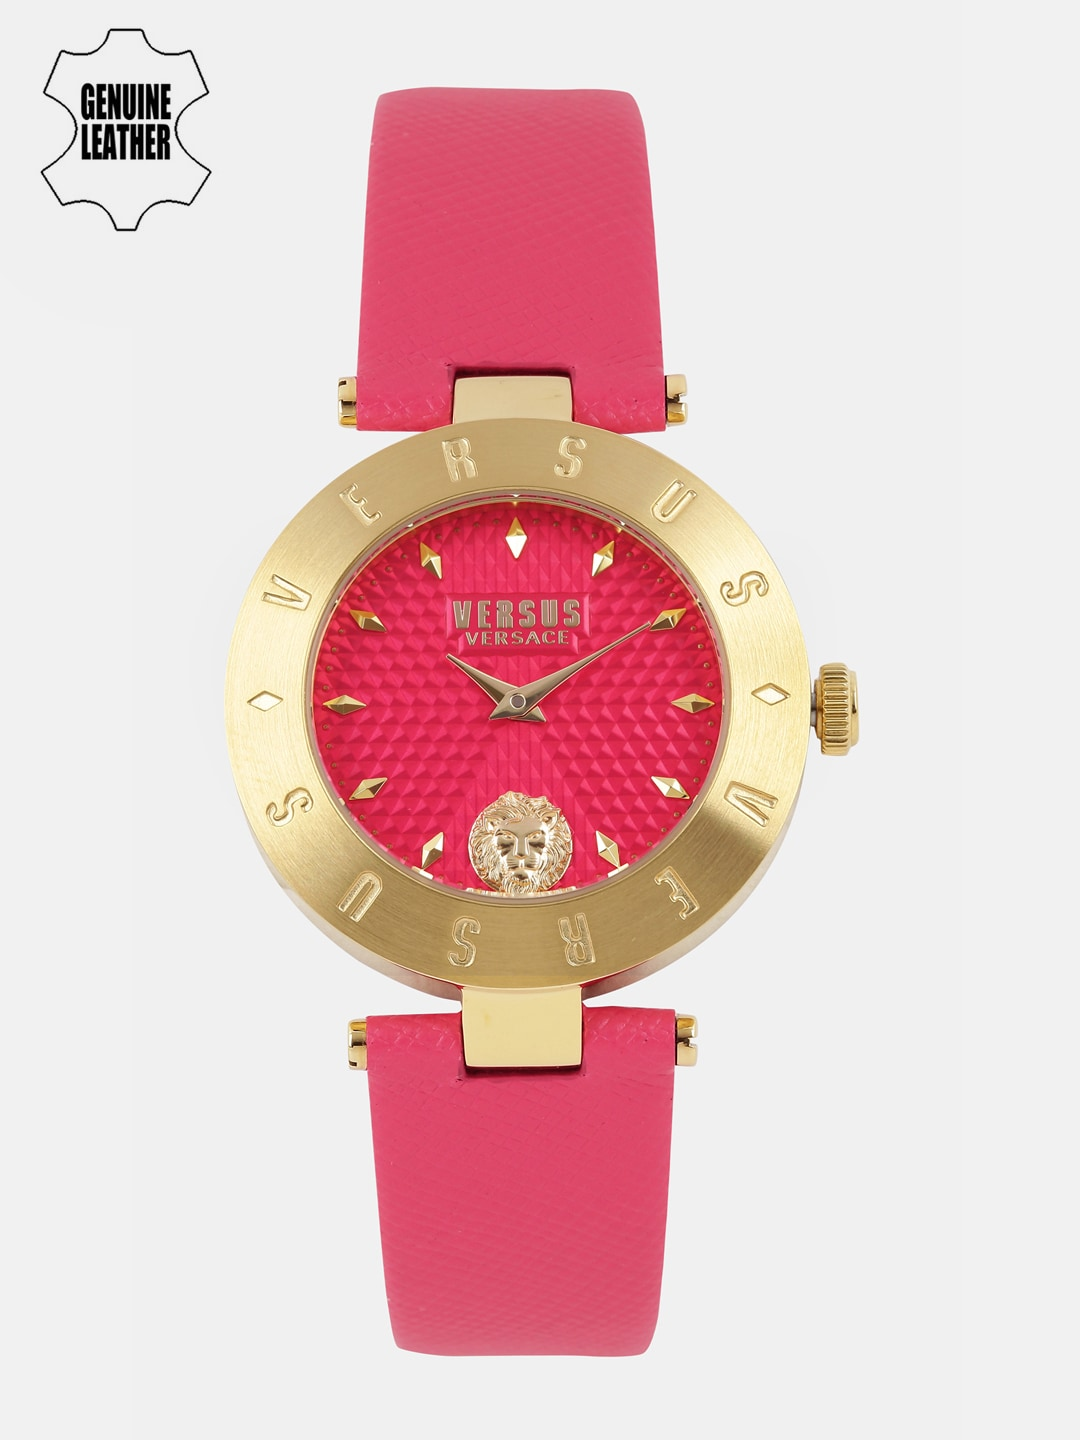 Versus by Versace Women Red Analogue Watch S7704 image